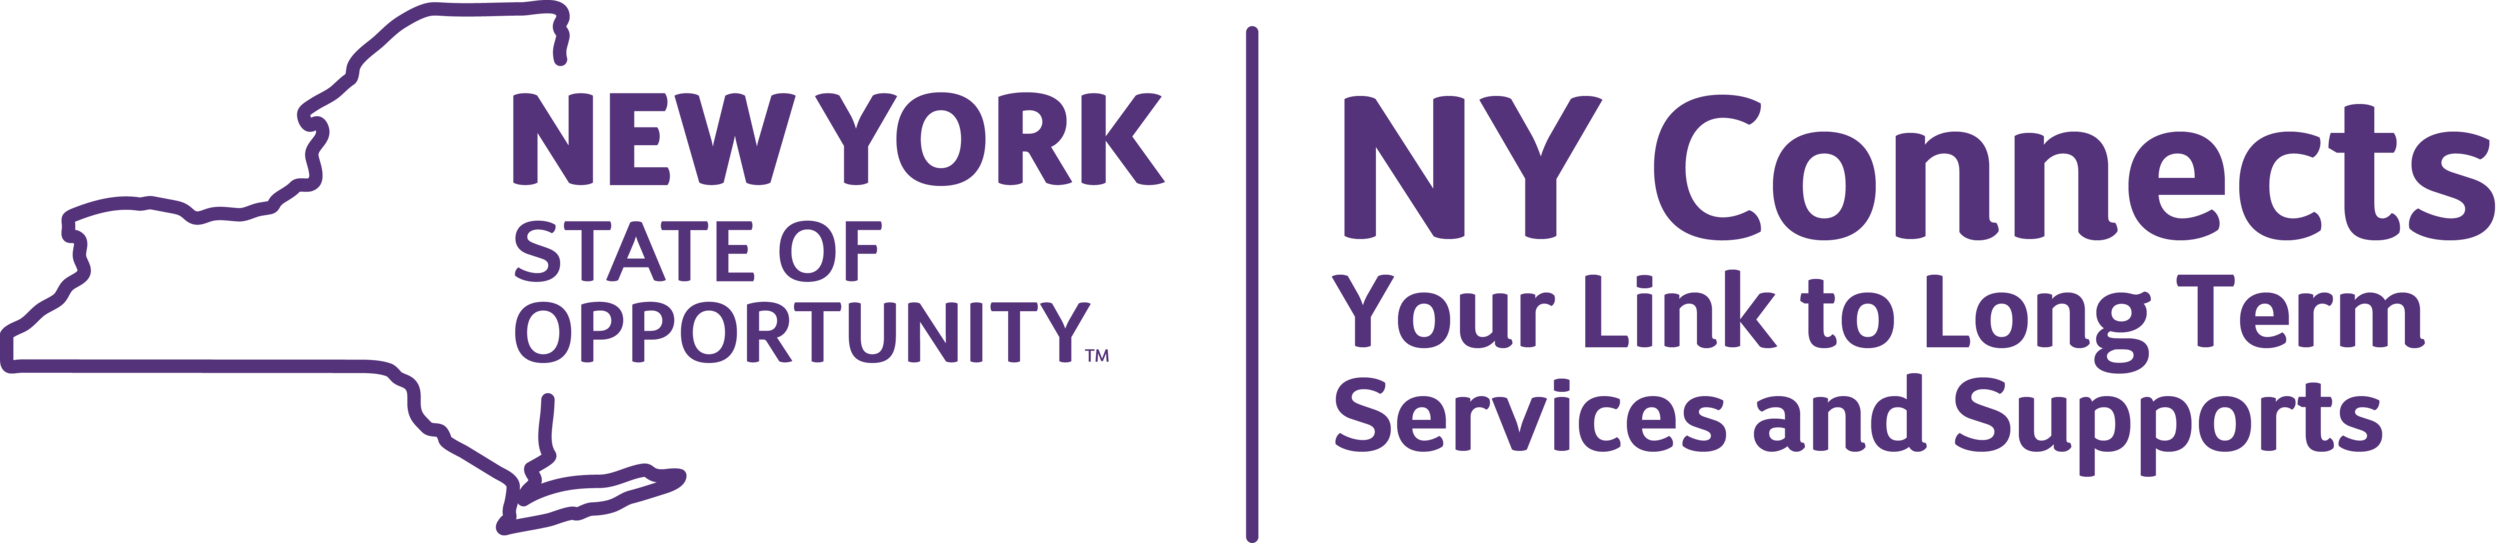 New York State Of opportunity NY Connects your link to long term services and supports